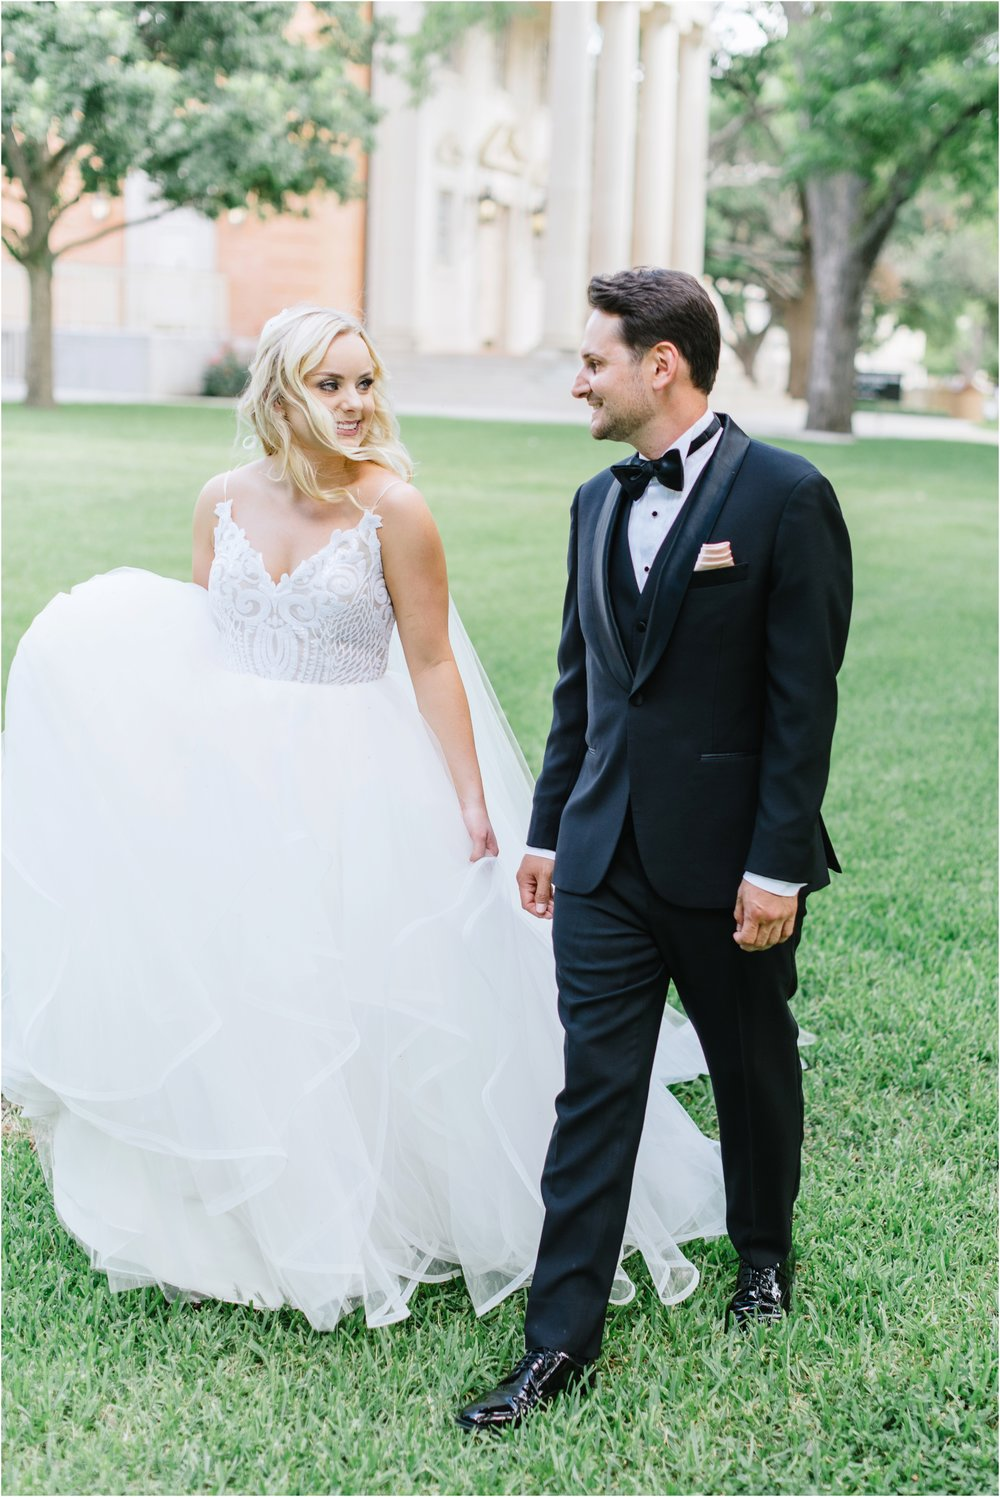 dallasweddingphotographer_fortworthweddingphotographer_texasweddingphotographer_mattandjulieweddings_0043.jpg